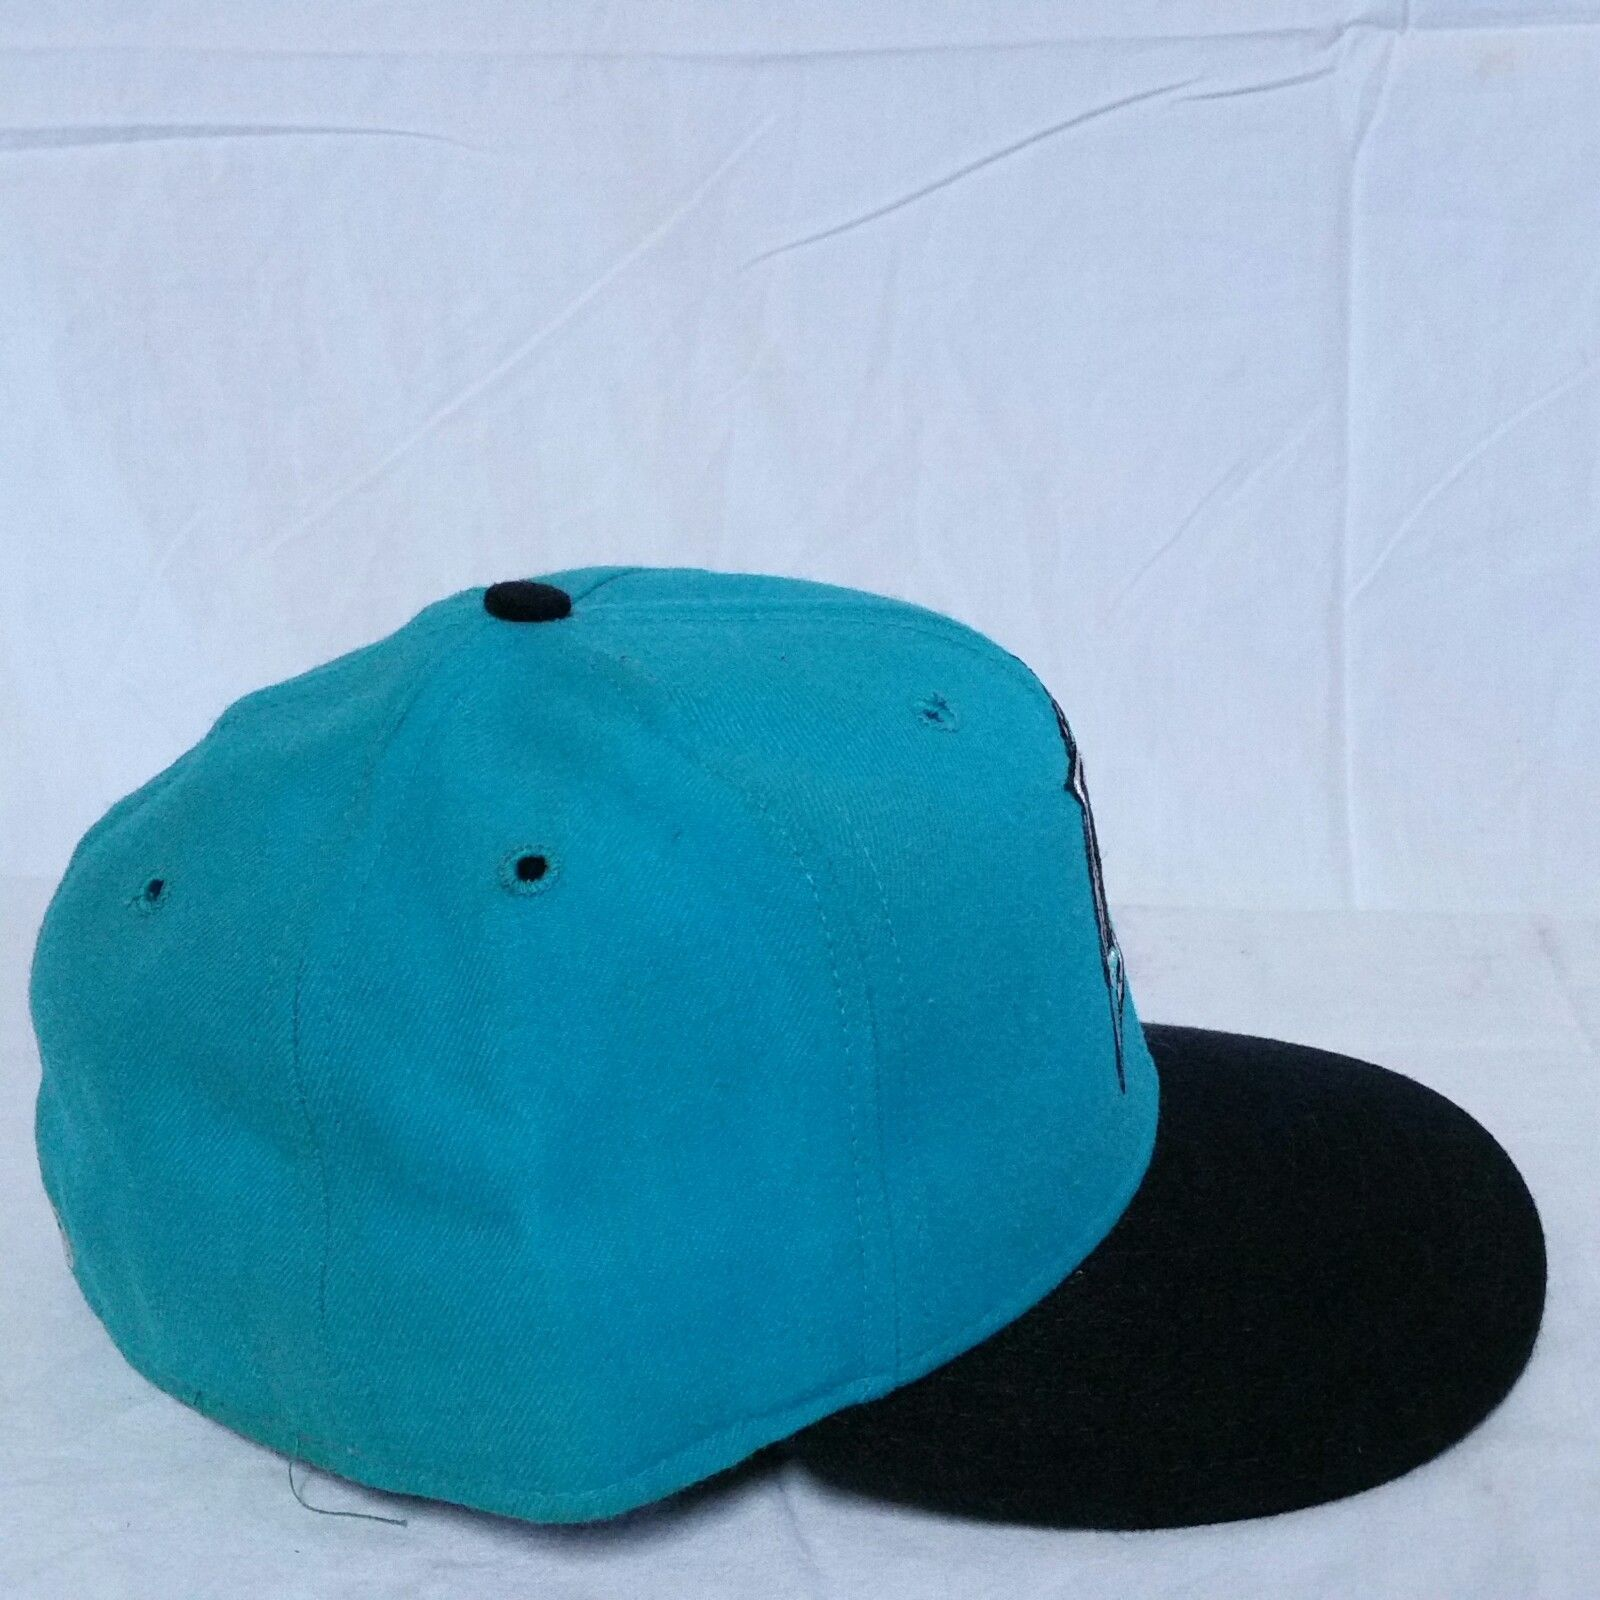 timeless design 58b39 0b9a5 VTG Florida Marlins New Era Fitted Hat 7 1 4 Diamond Collection Pro Model  Cap